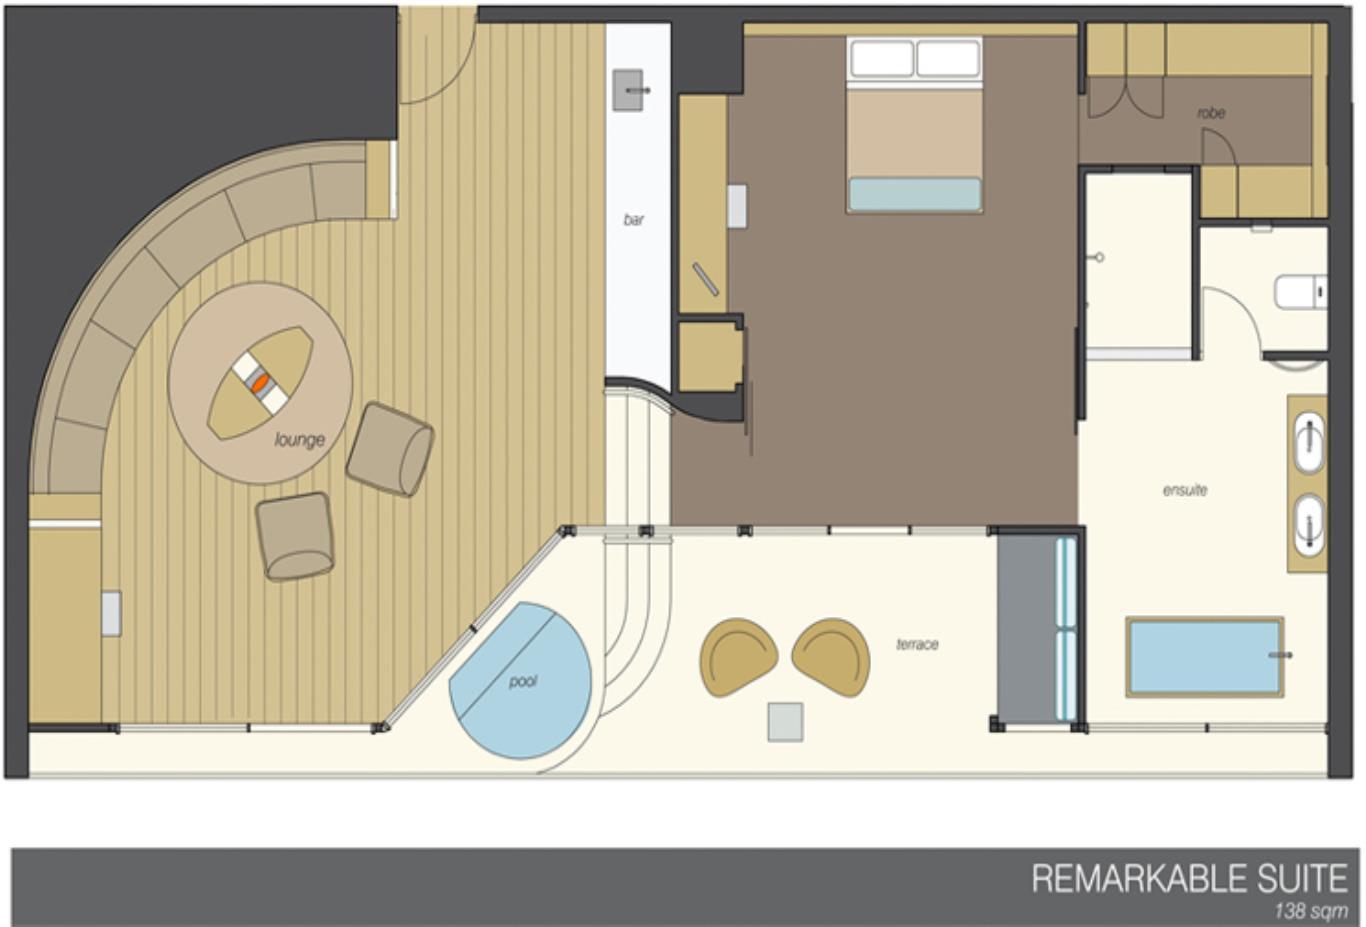 Remarkable Suite floor plan